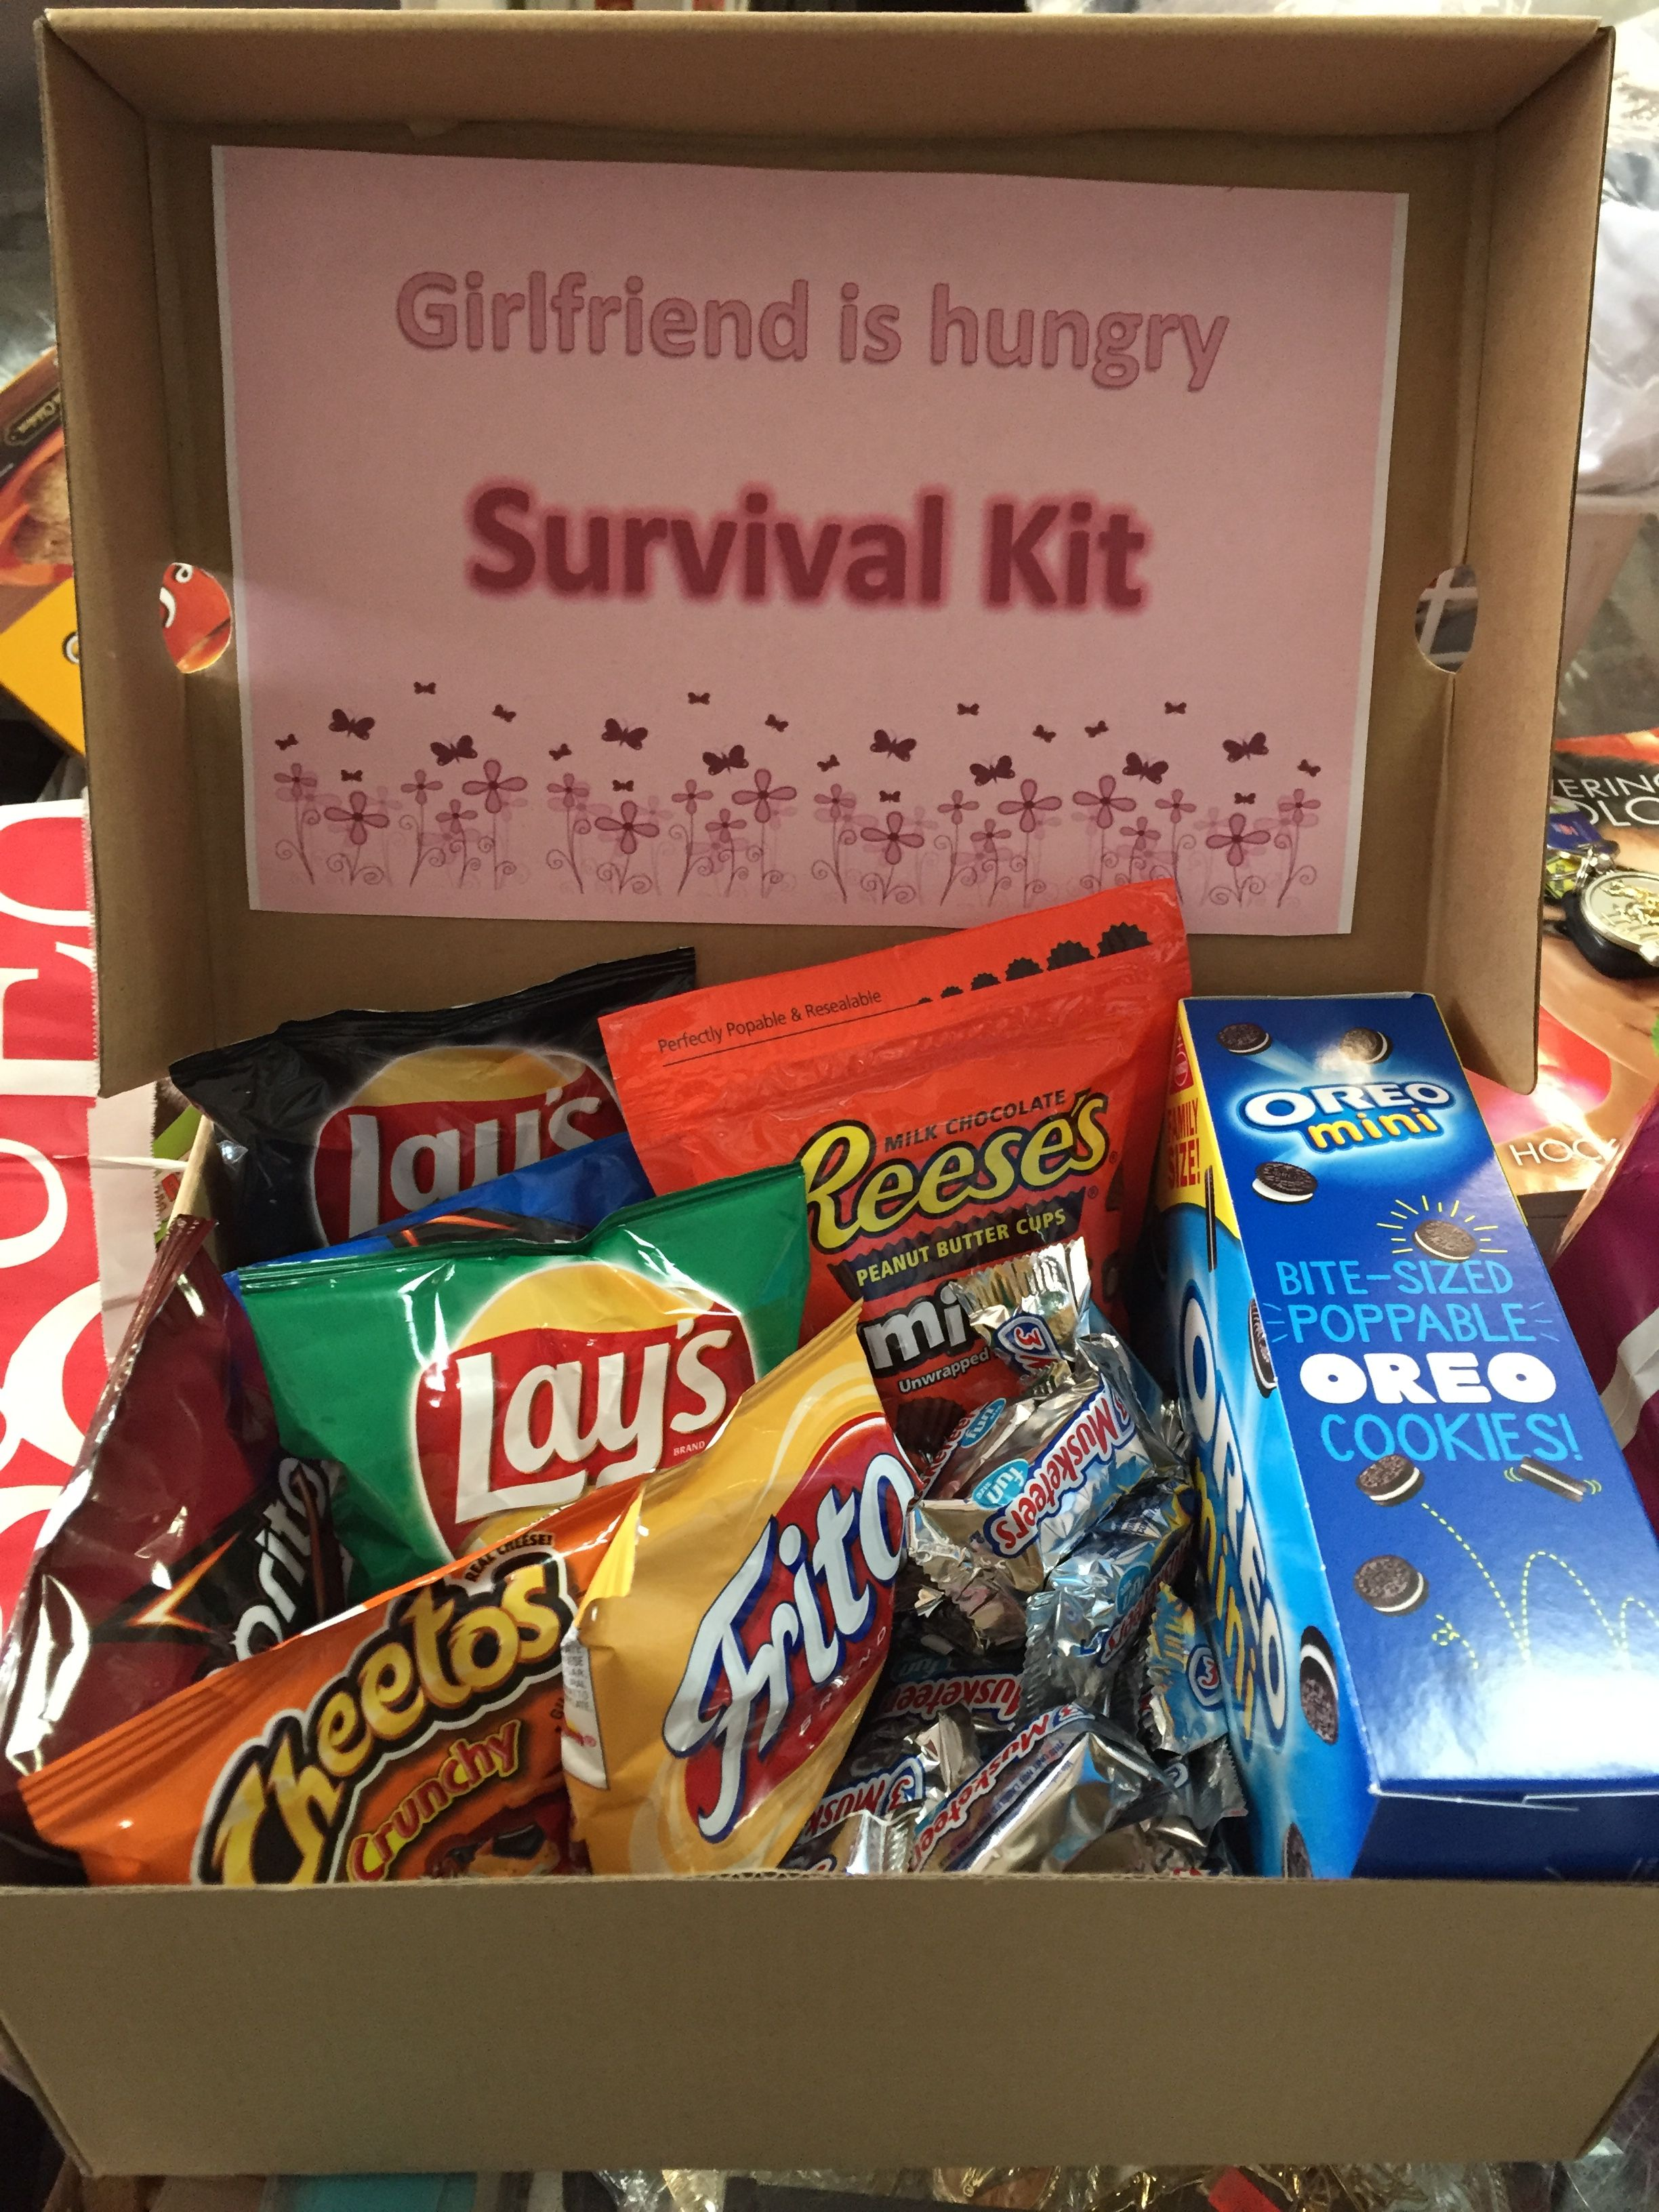 You can keep this girlfriend survival kit in your car for